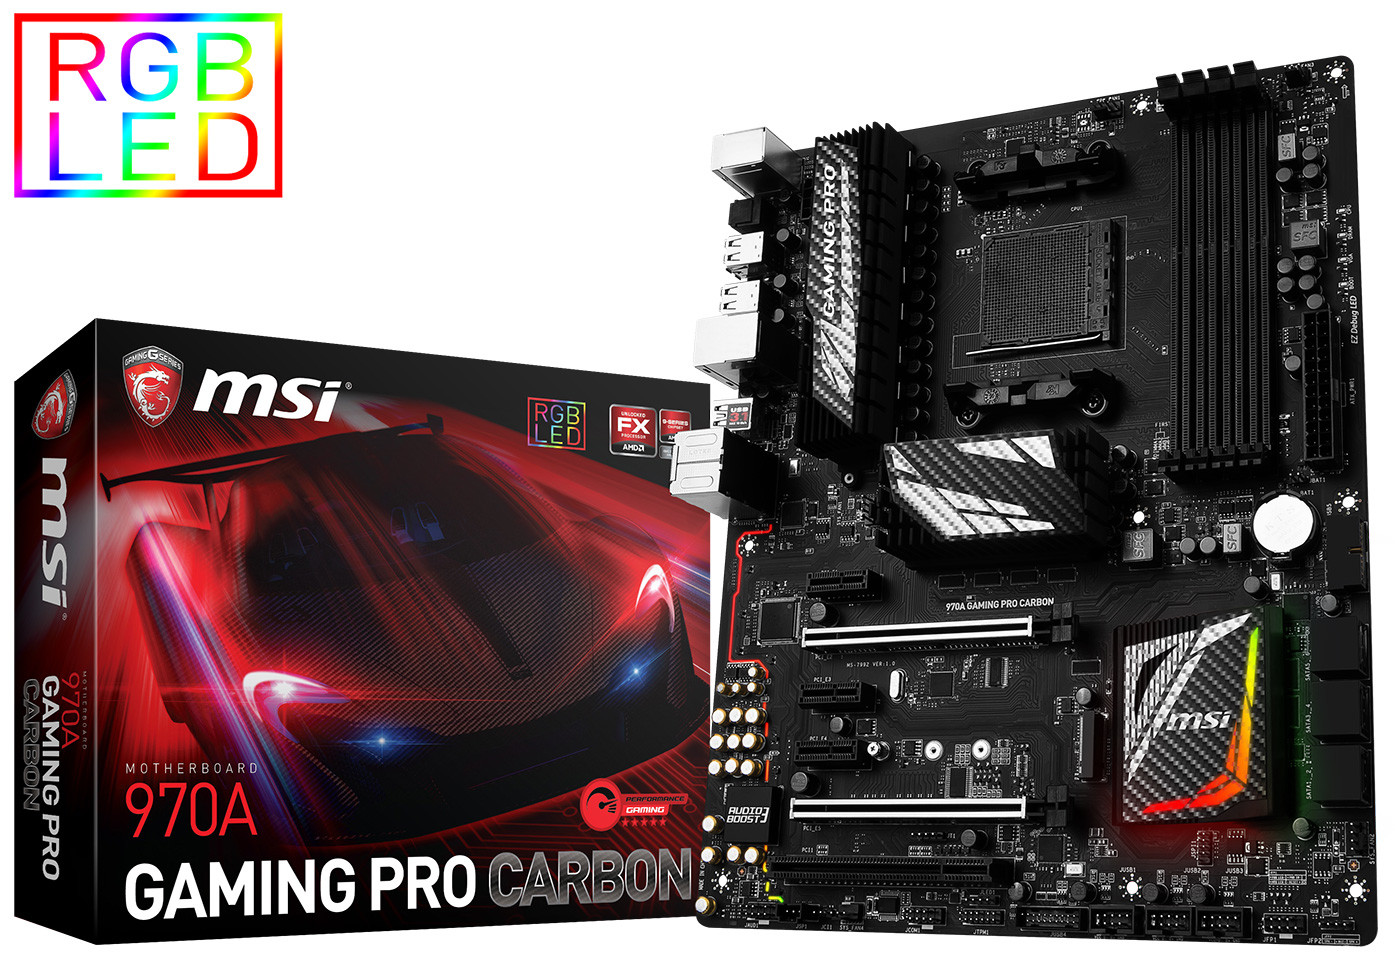 MSI announced their AM3+ 970A Gaming Pro Carbon motherboard